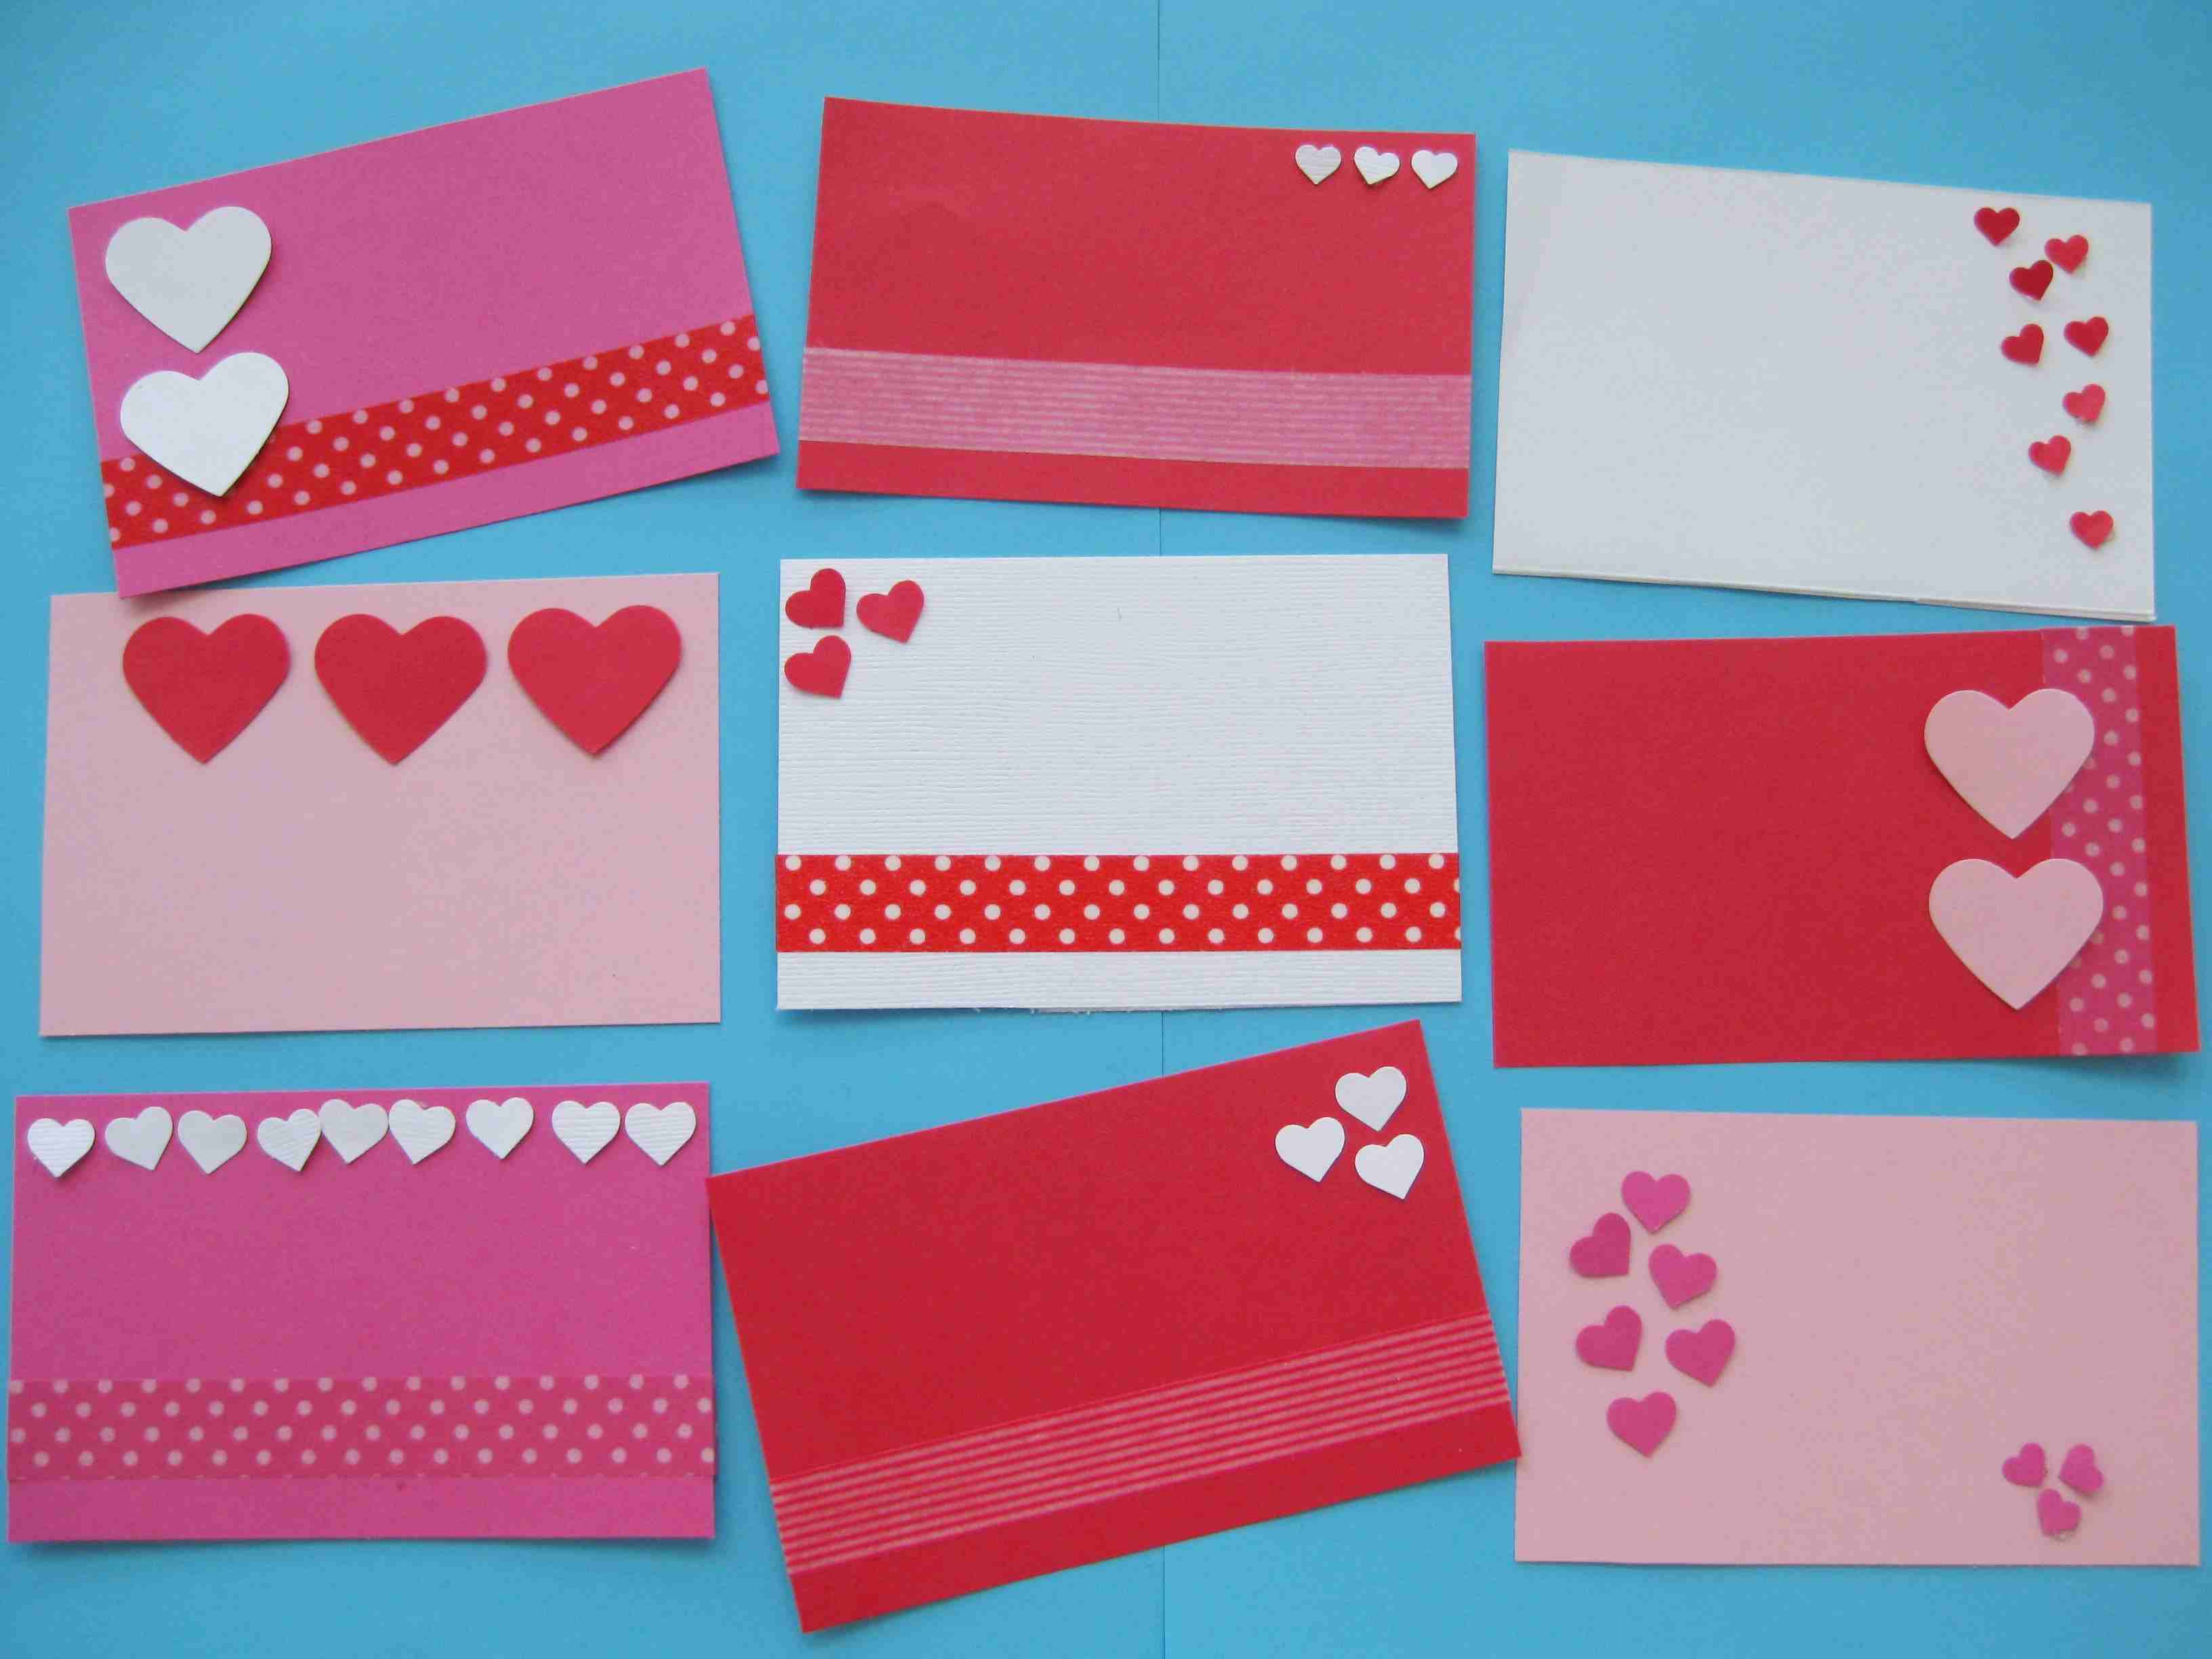 10 Best Valentine Card Ideas For Kids To Make fun and easy valentine crafts for kids 2020